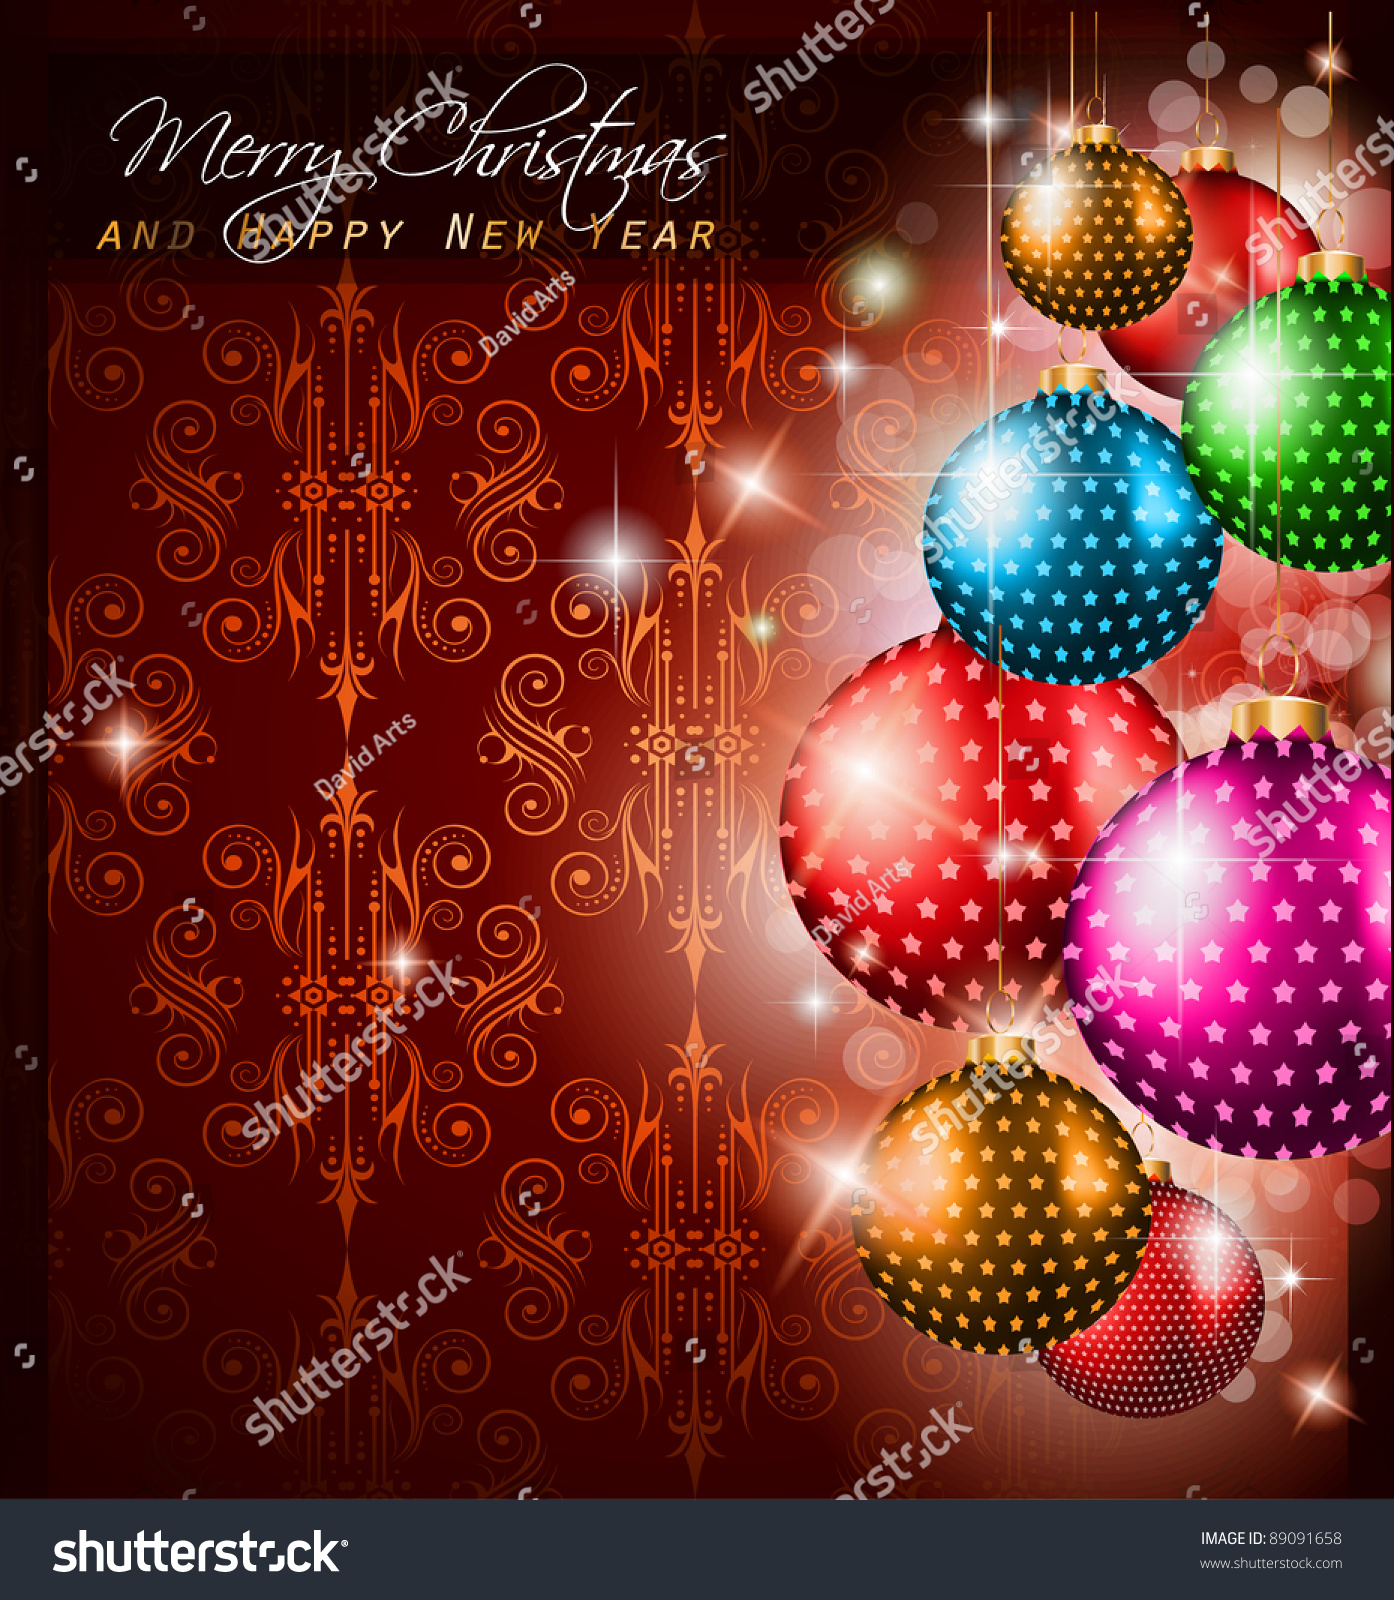 Elegant classic christmas greetings background flyers stock elegant classic christmas greetings background for flyers invitations cards or posters new baubleswith m4hsunfo